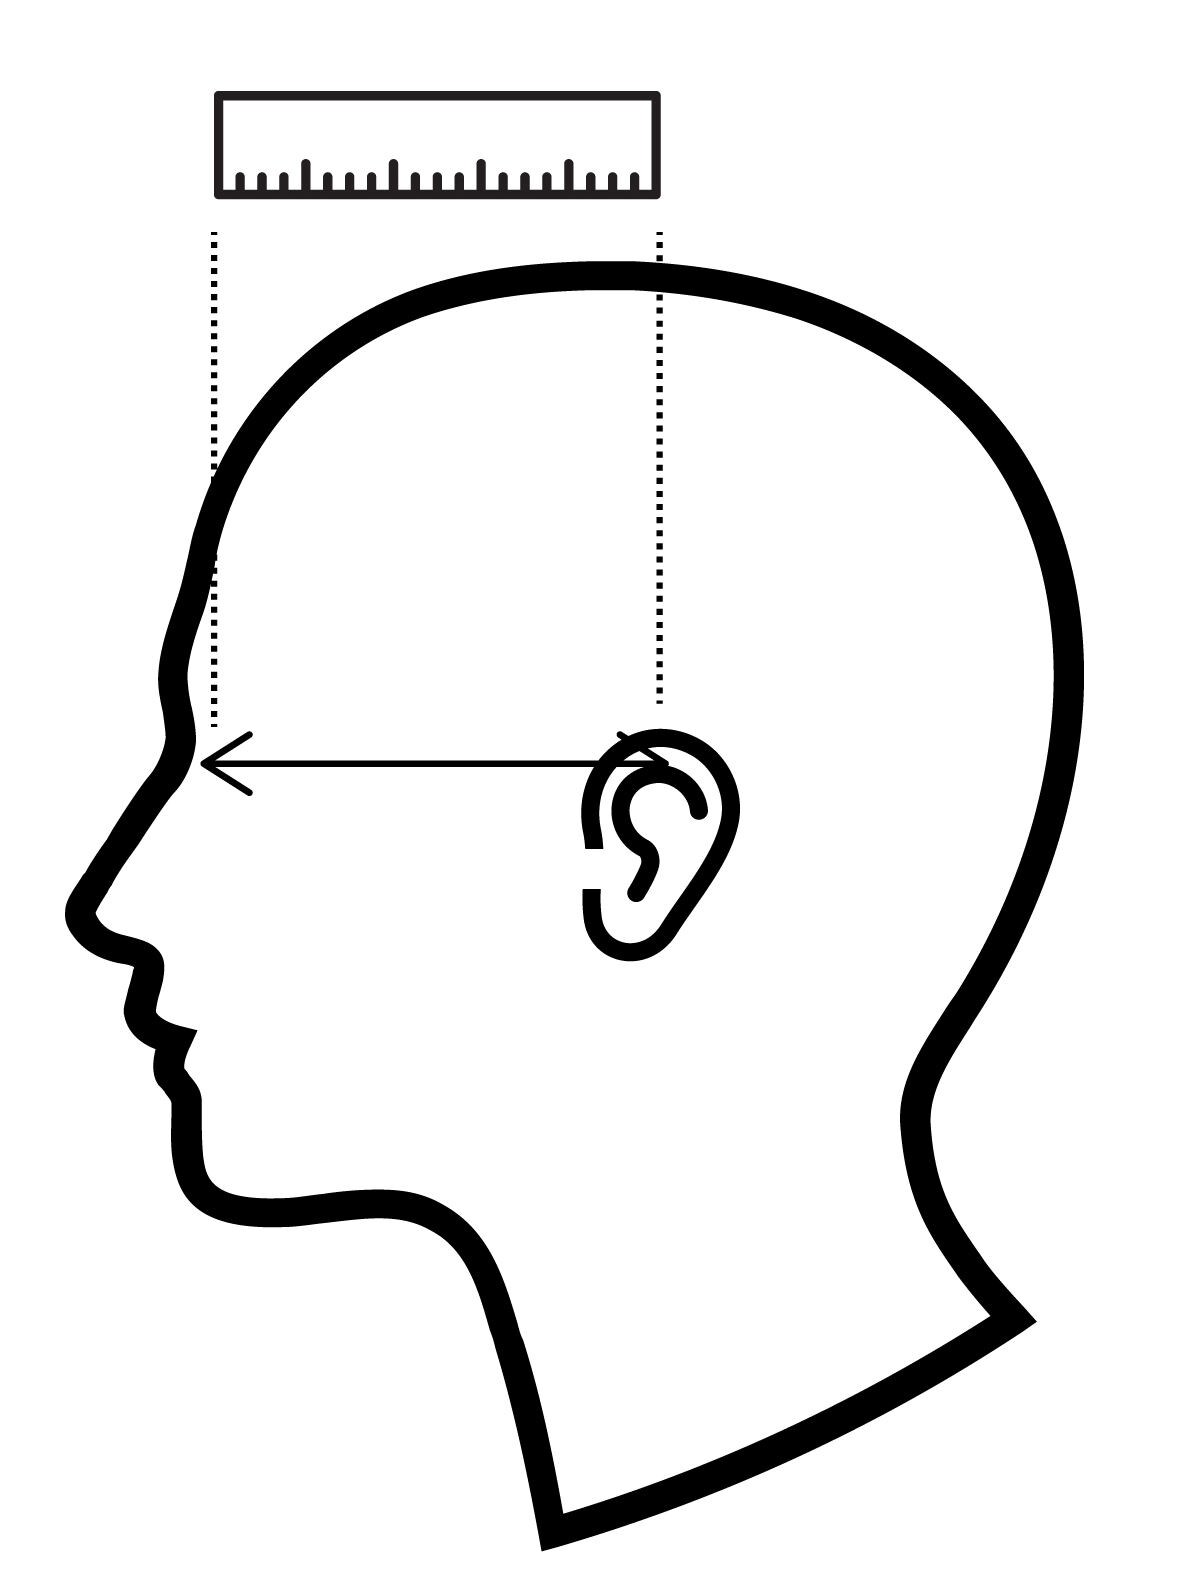 Measurement 1: Bridge of nose to behind ear (one side)